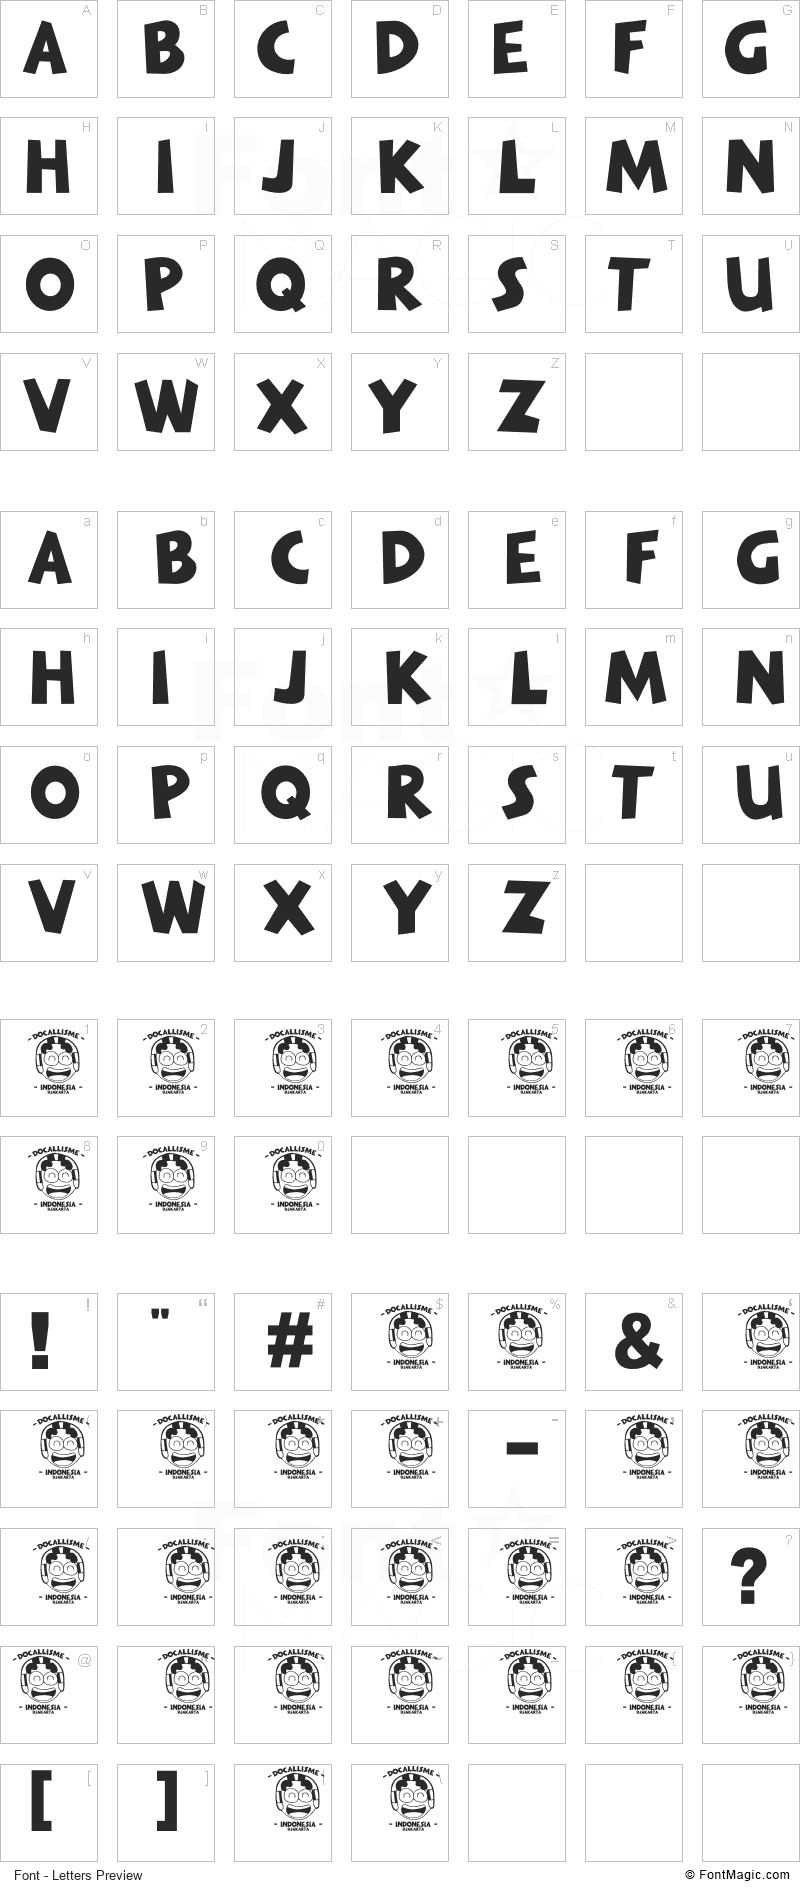 The Minion Font - All Latters Preview Chart